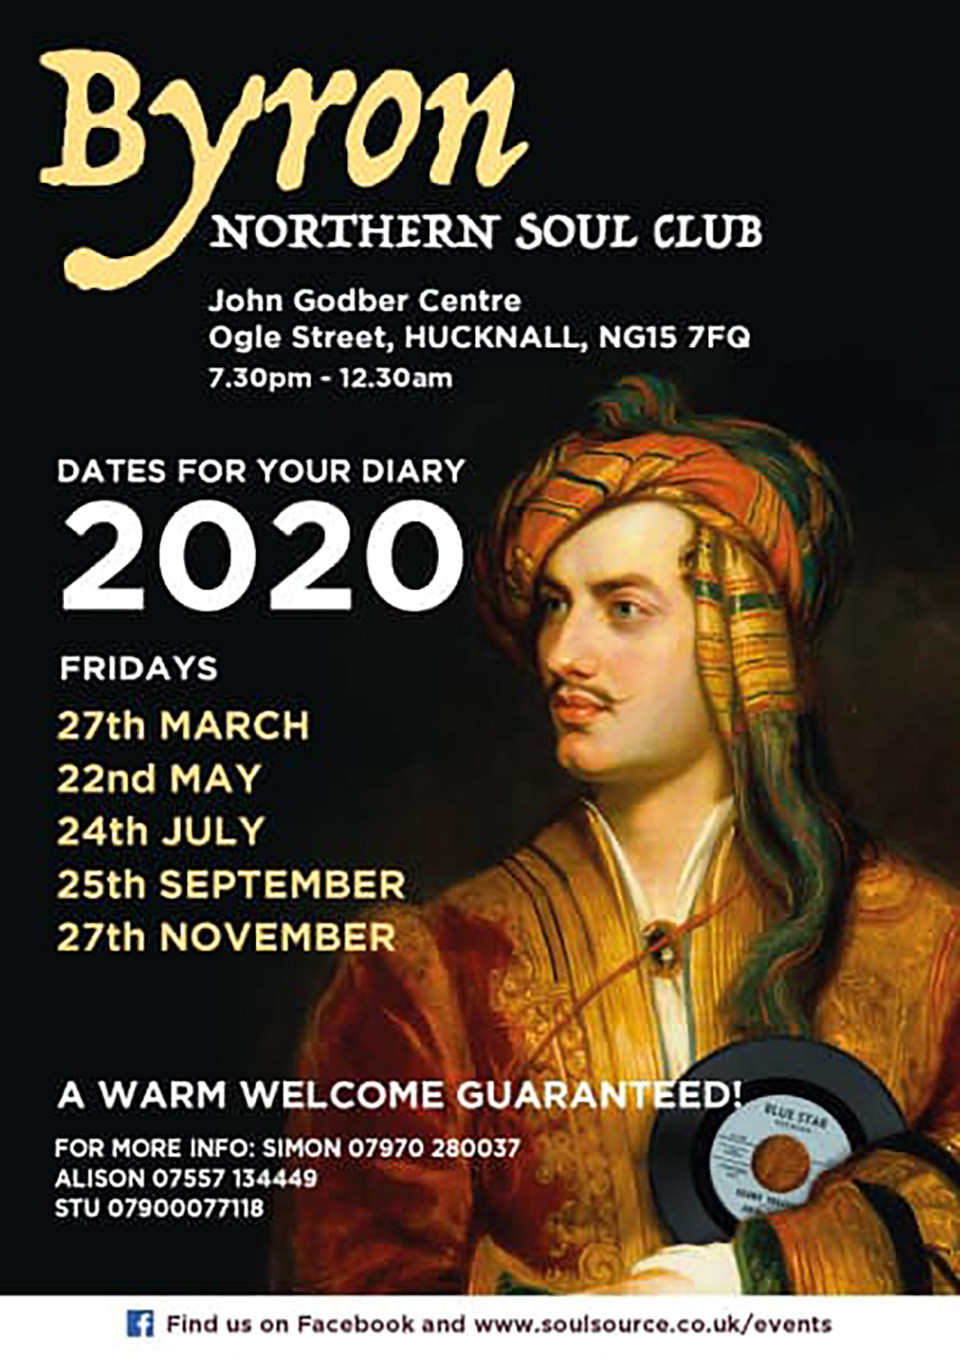 Byron Northern Soul Club event dates 2020